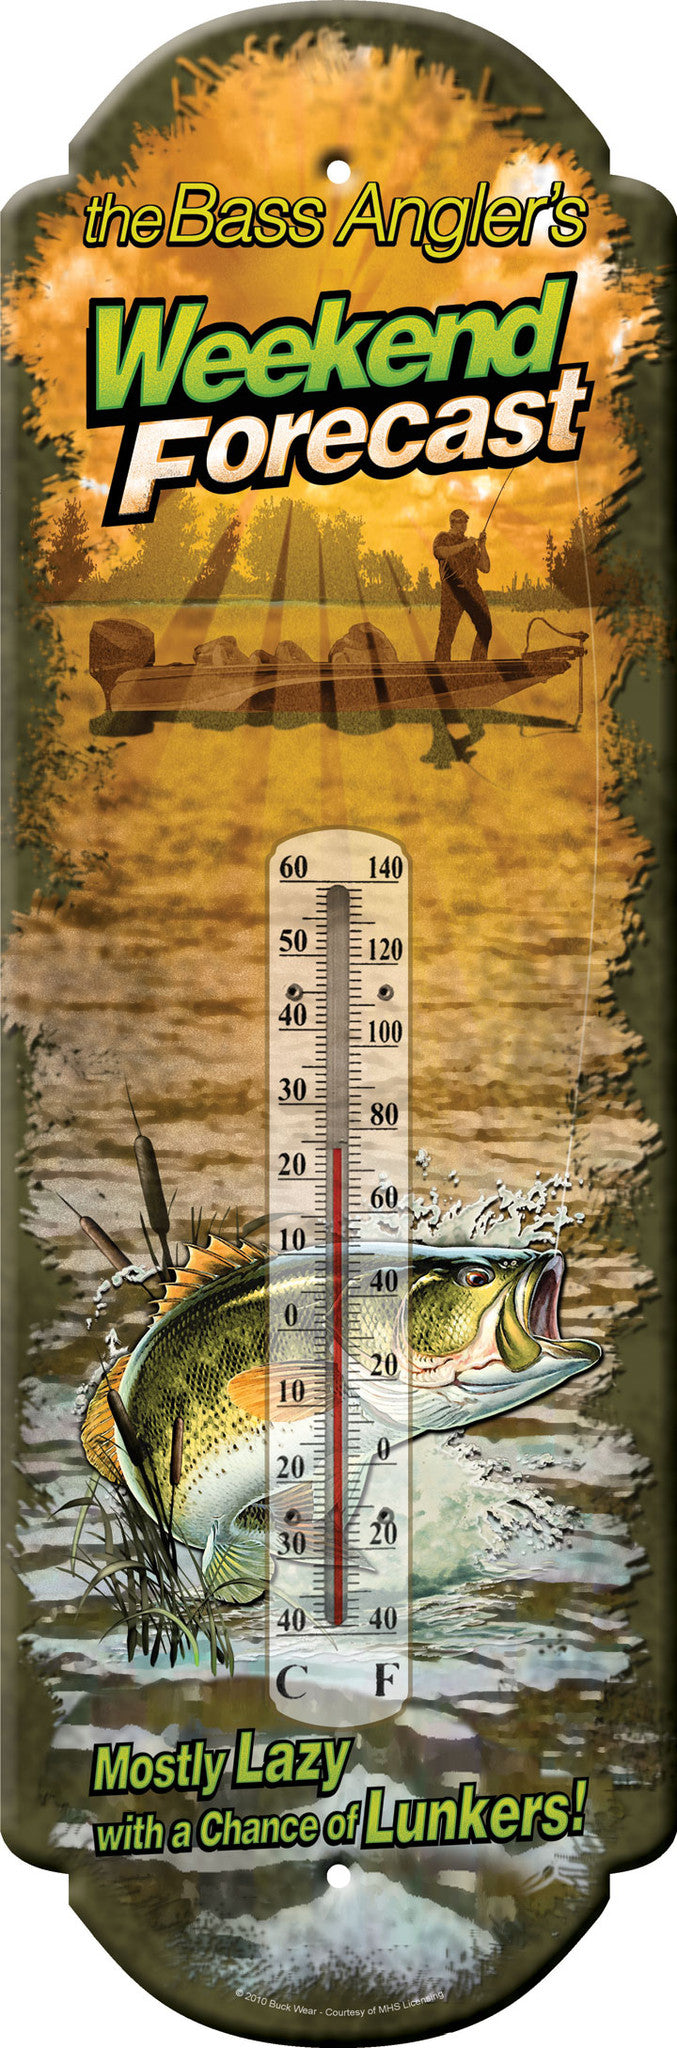 Weekend Forecast Thermometer - GrayGoose Products Limited